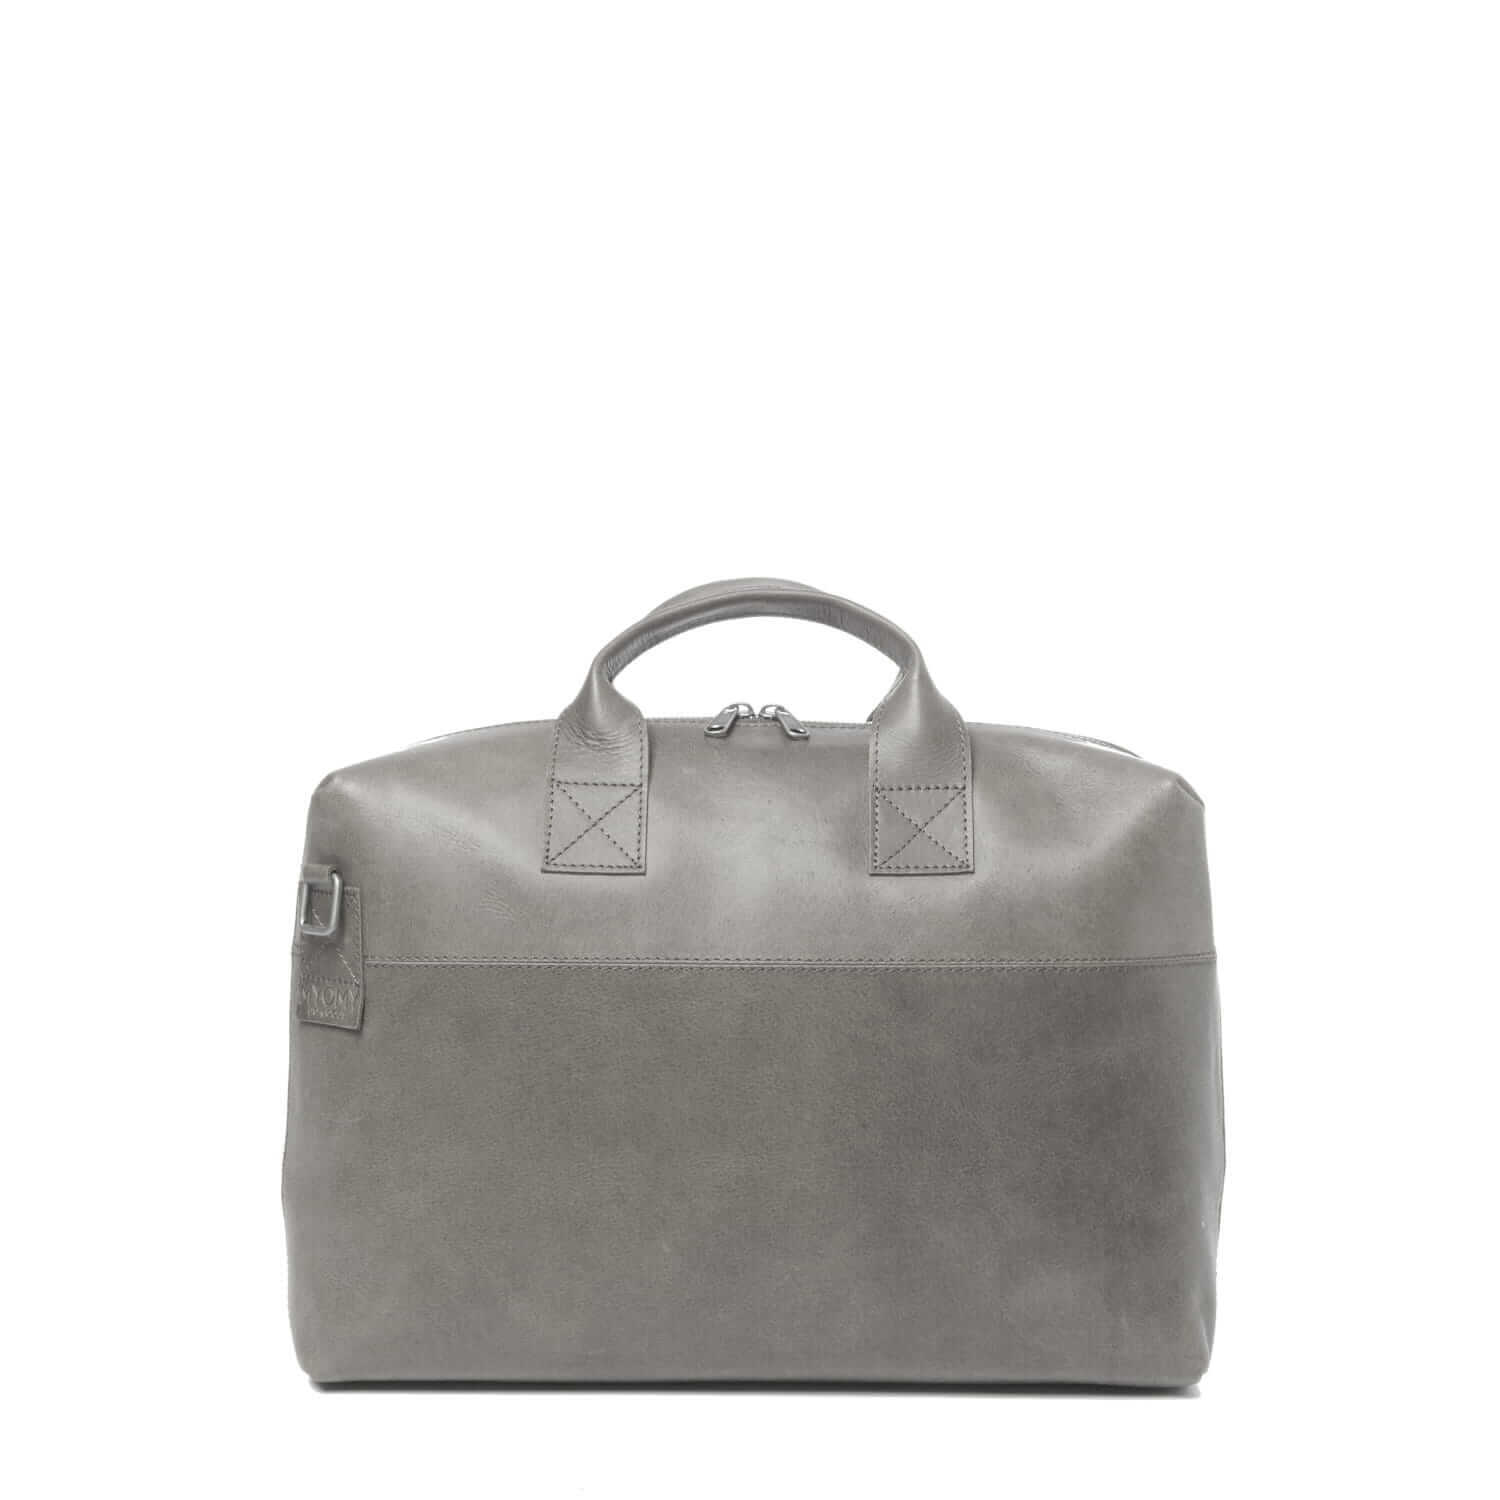 MY PHILIP BAG Business bag – hunter elephant grey